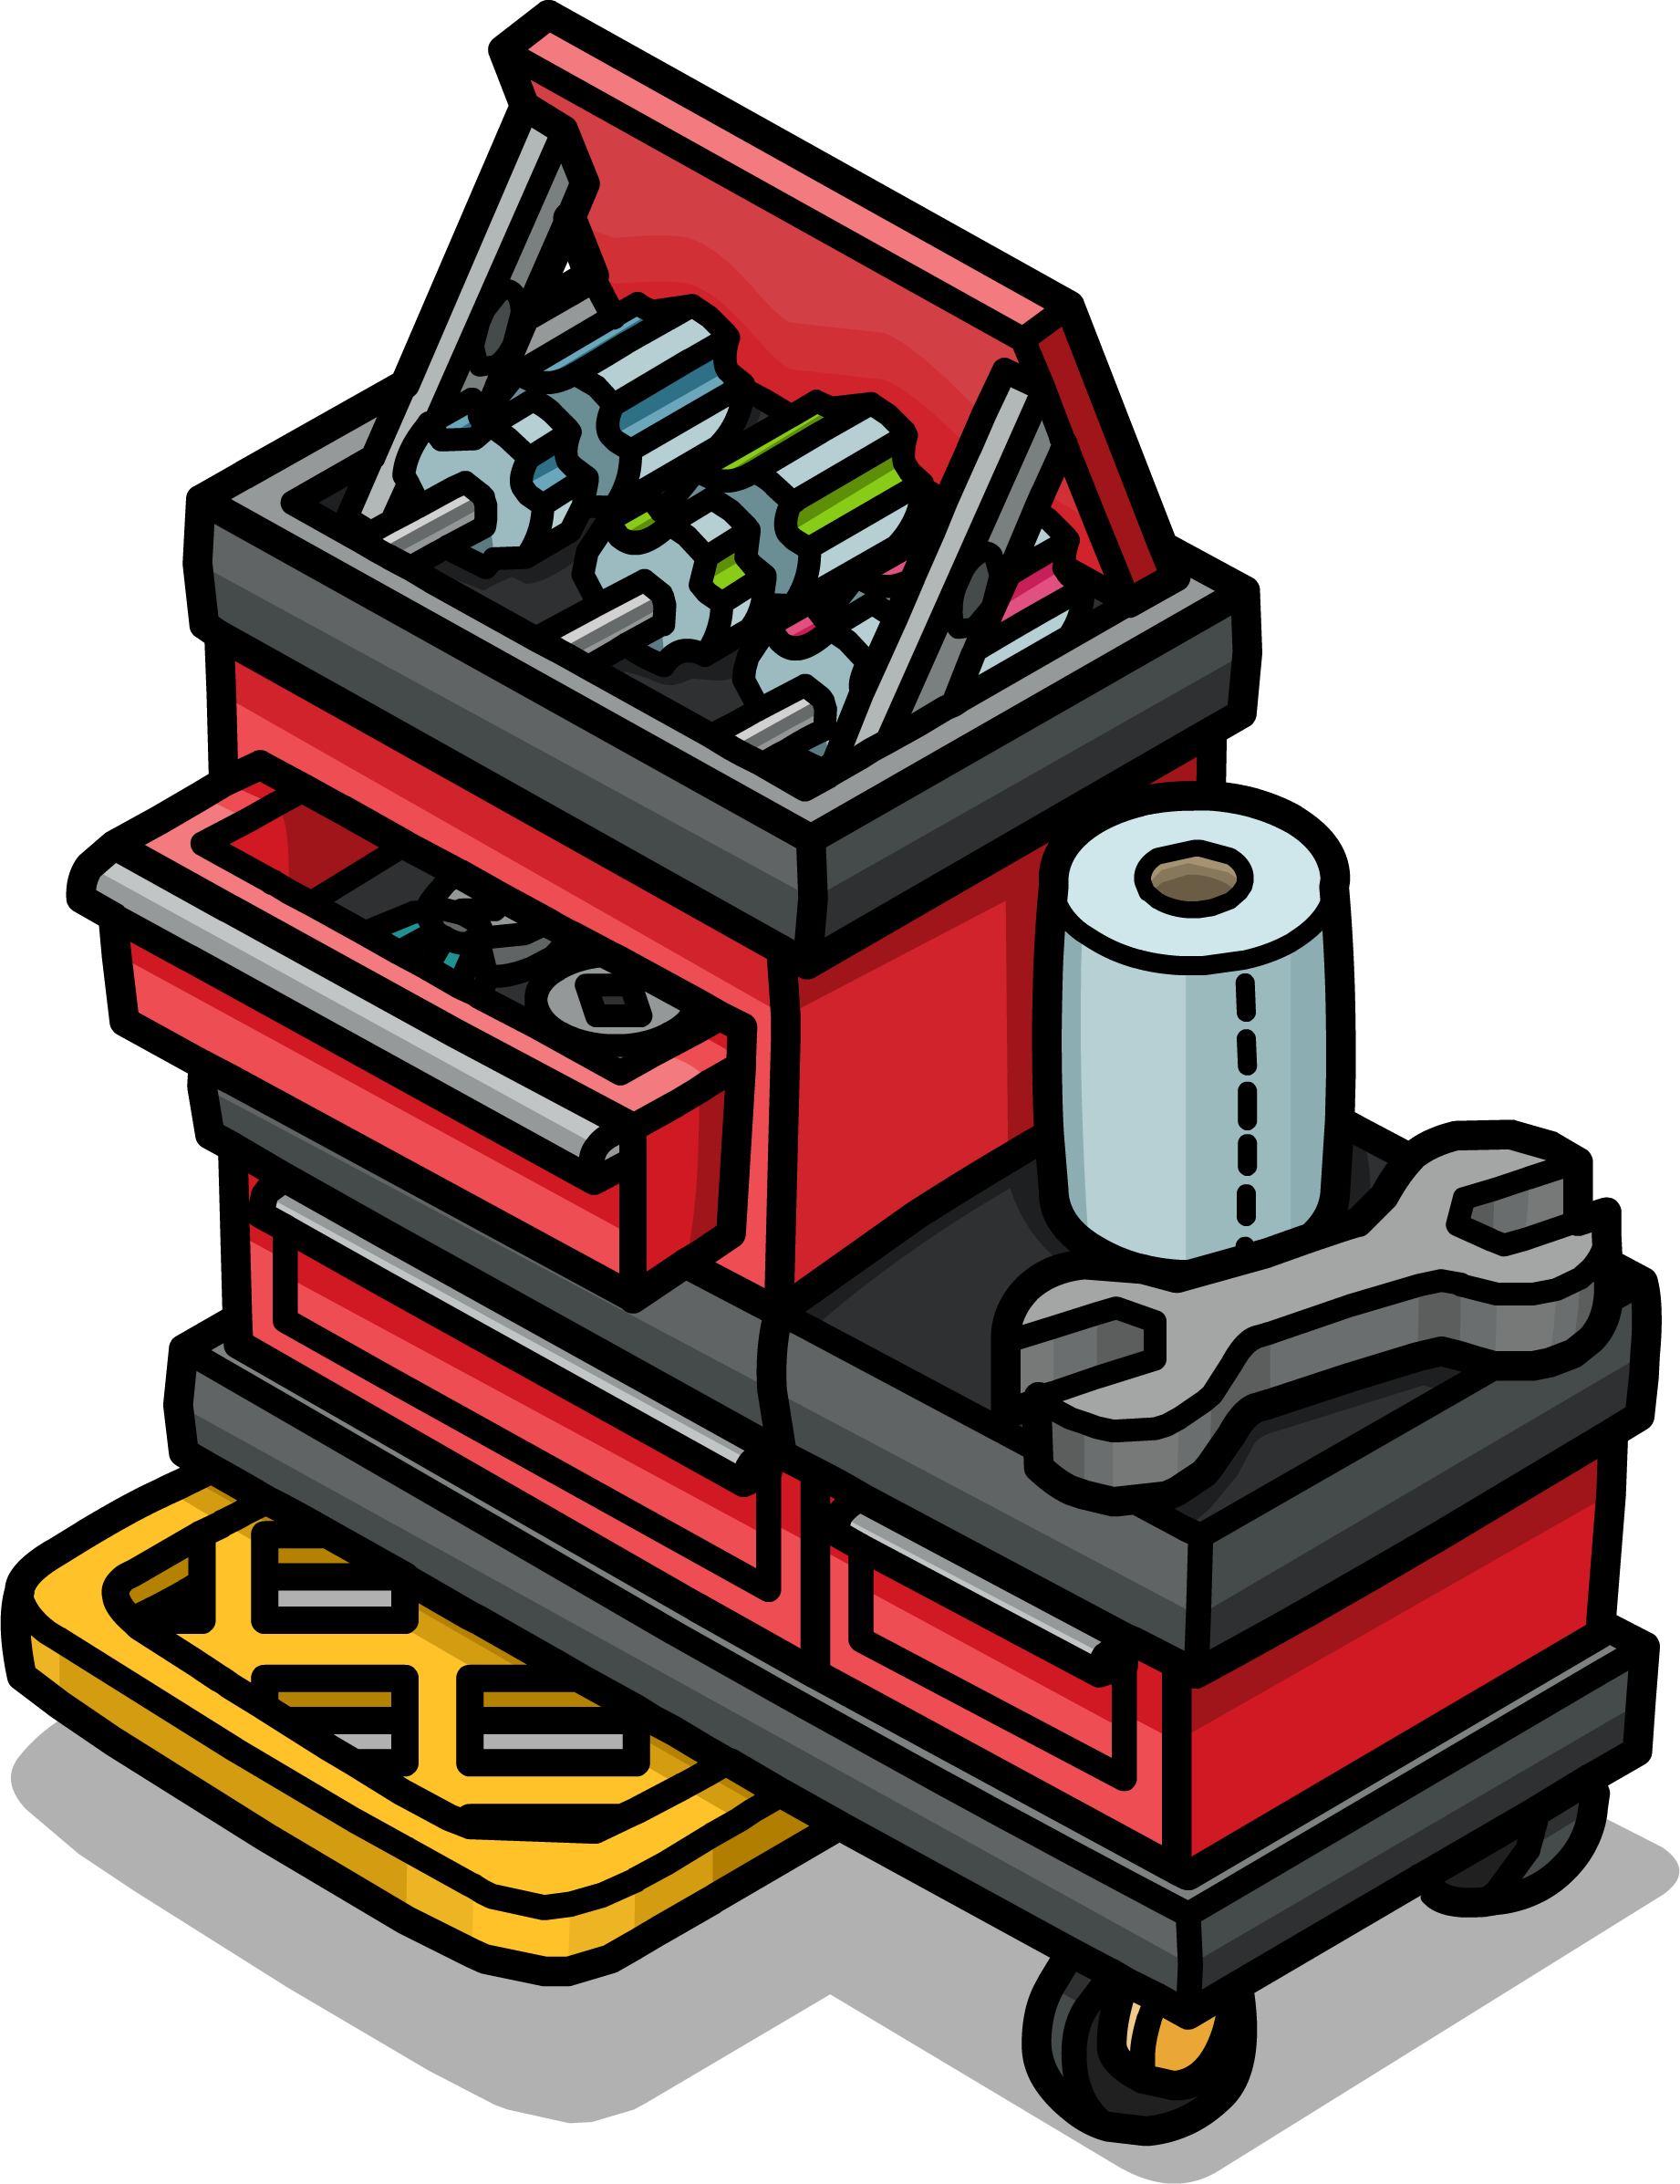 Image deluxe sprite png. Tool clipart tool chest